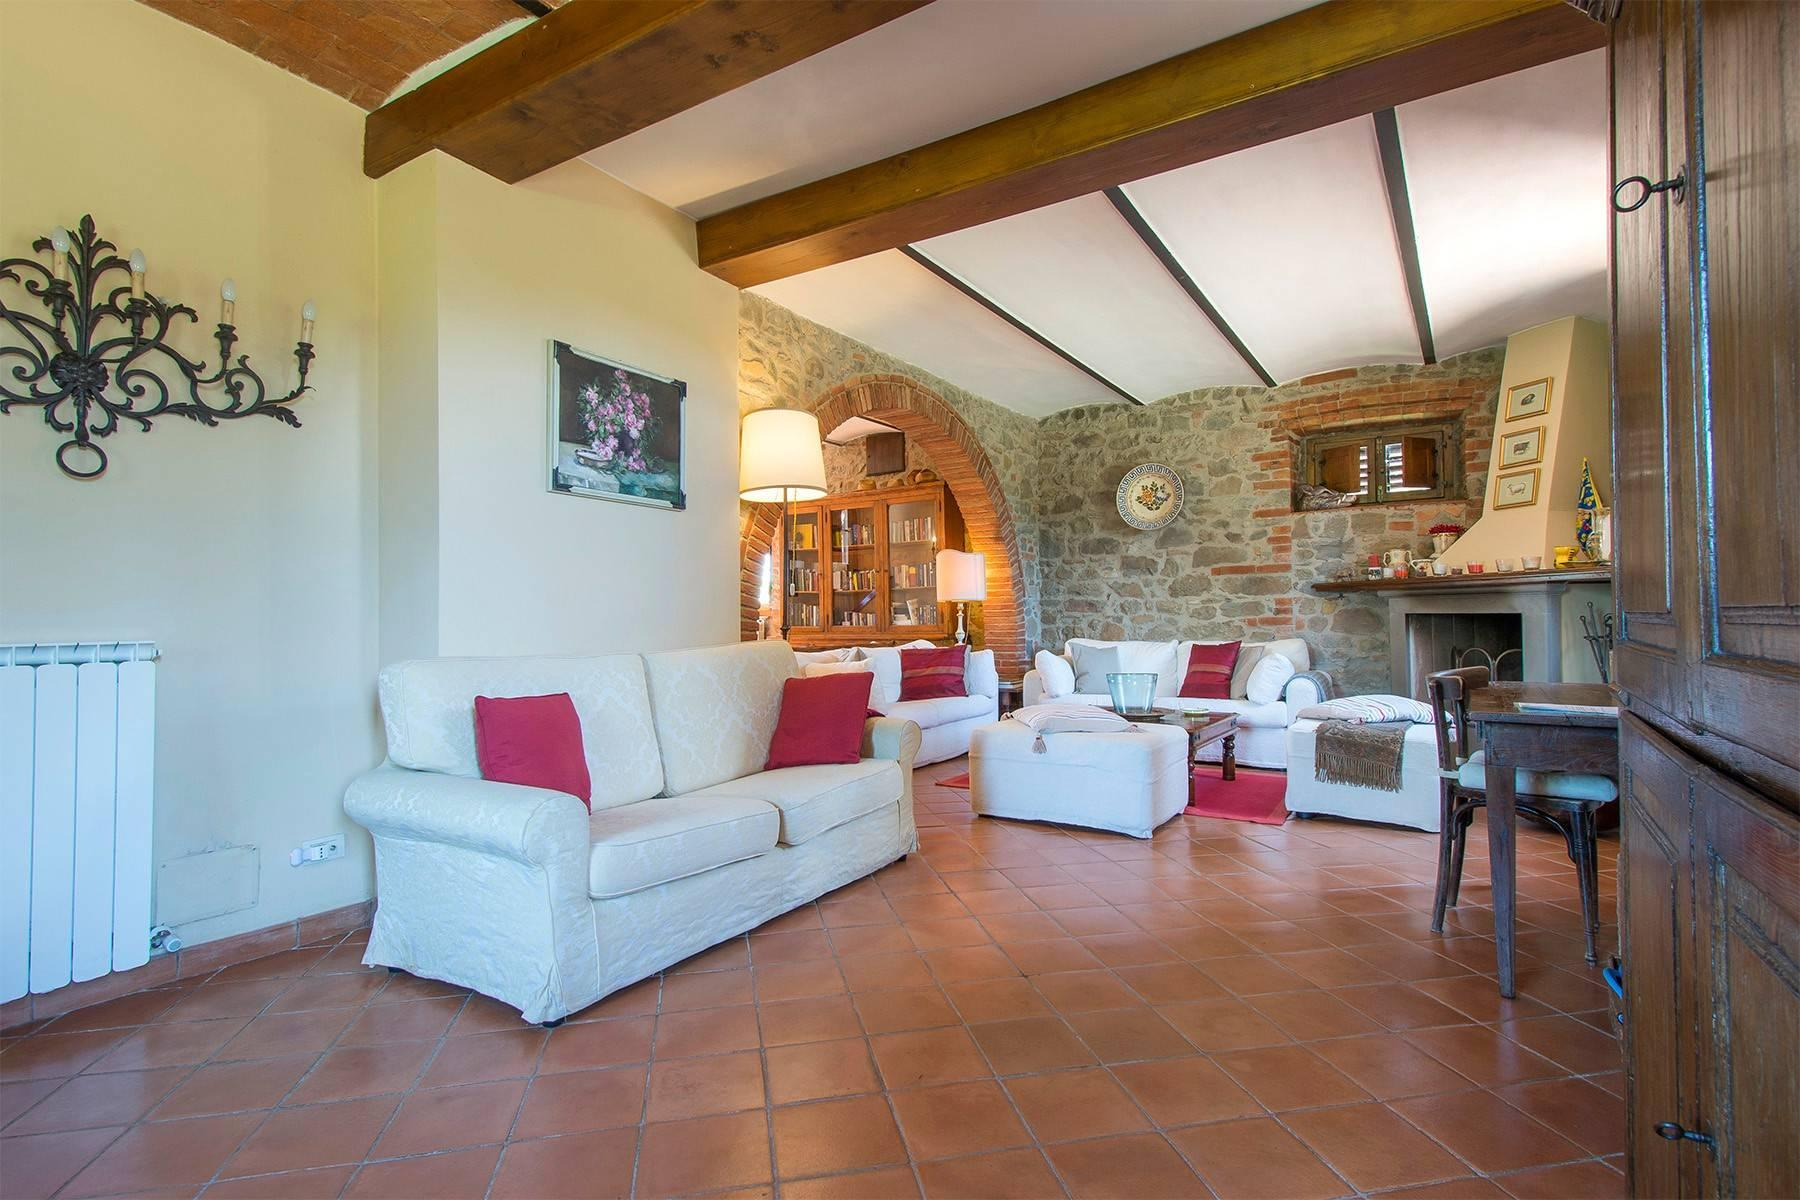 House in the Tuscan Hills for Sale - 7